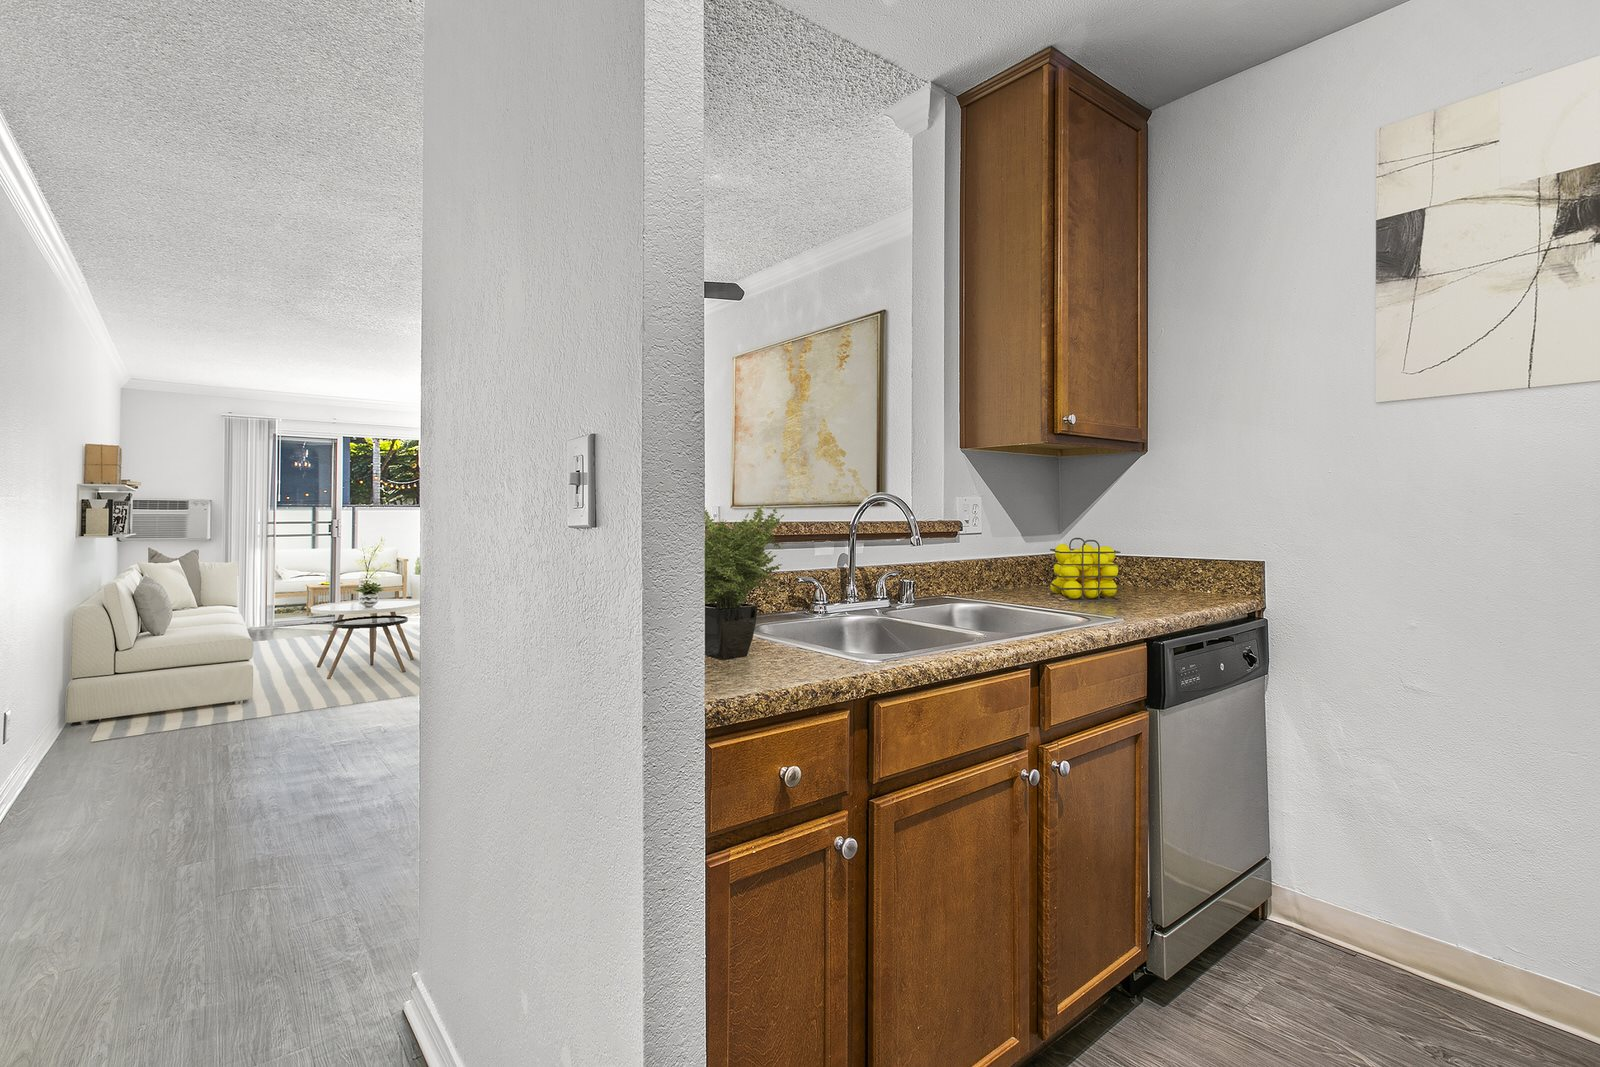 Living Area and Kitchen Interior Photo at Milano Apartments 20900 Anza Ave Torrance, CA 90503